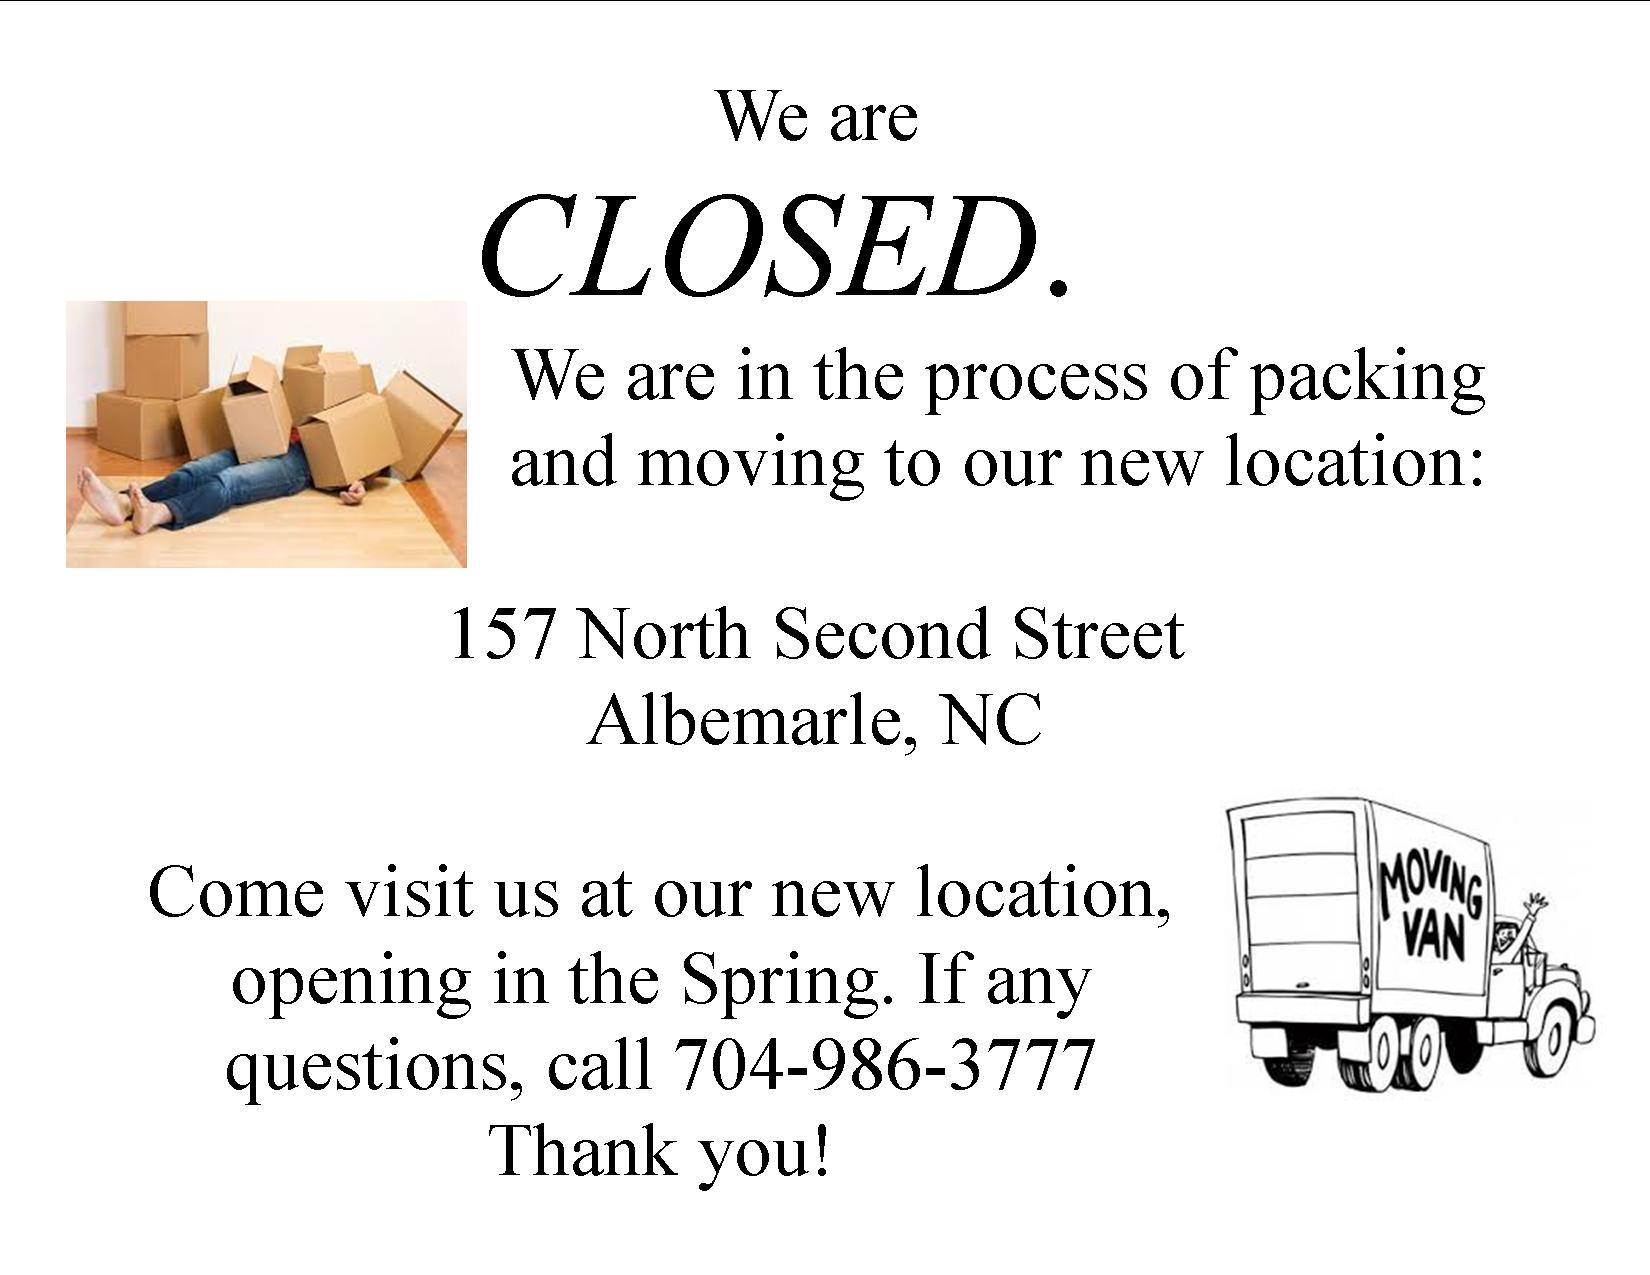 We are moving and have closed to pack!